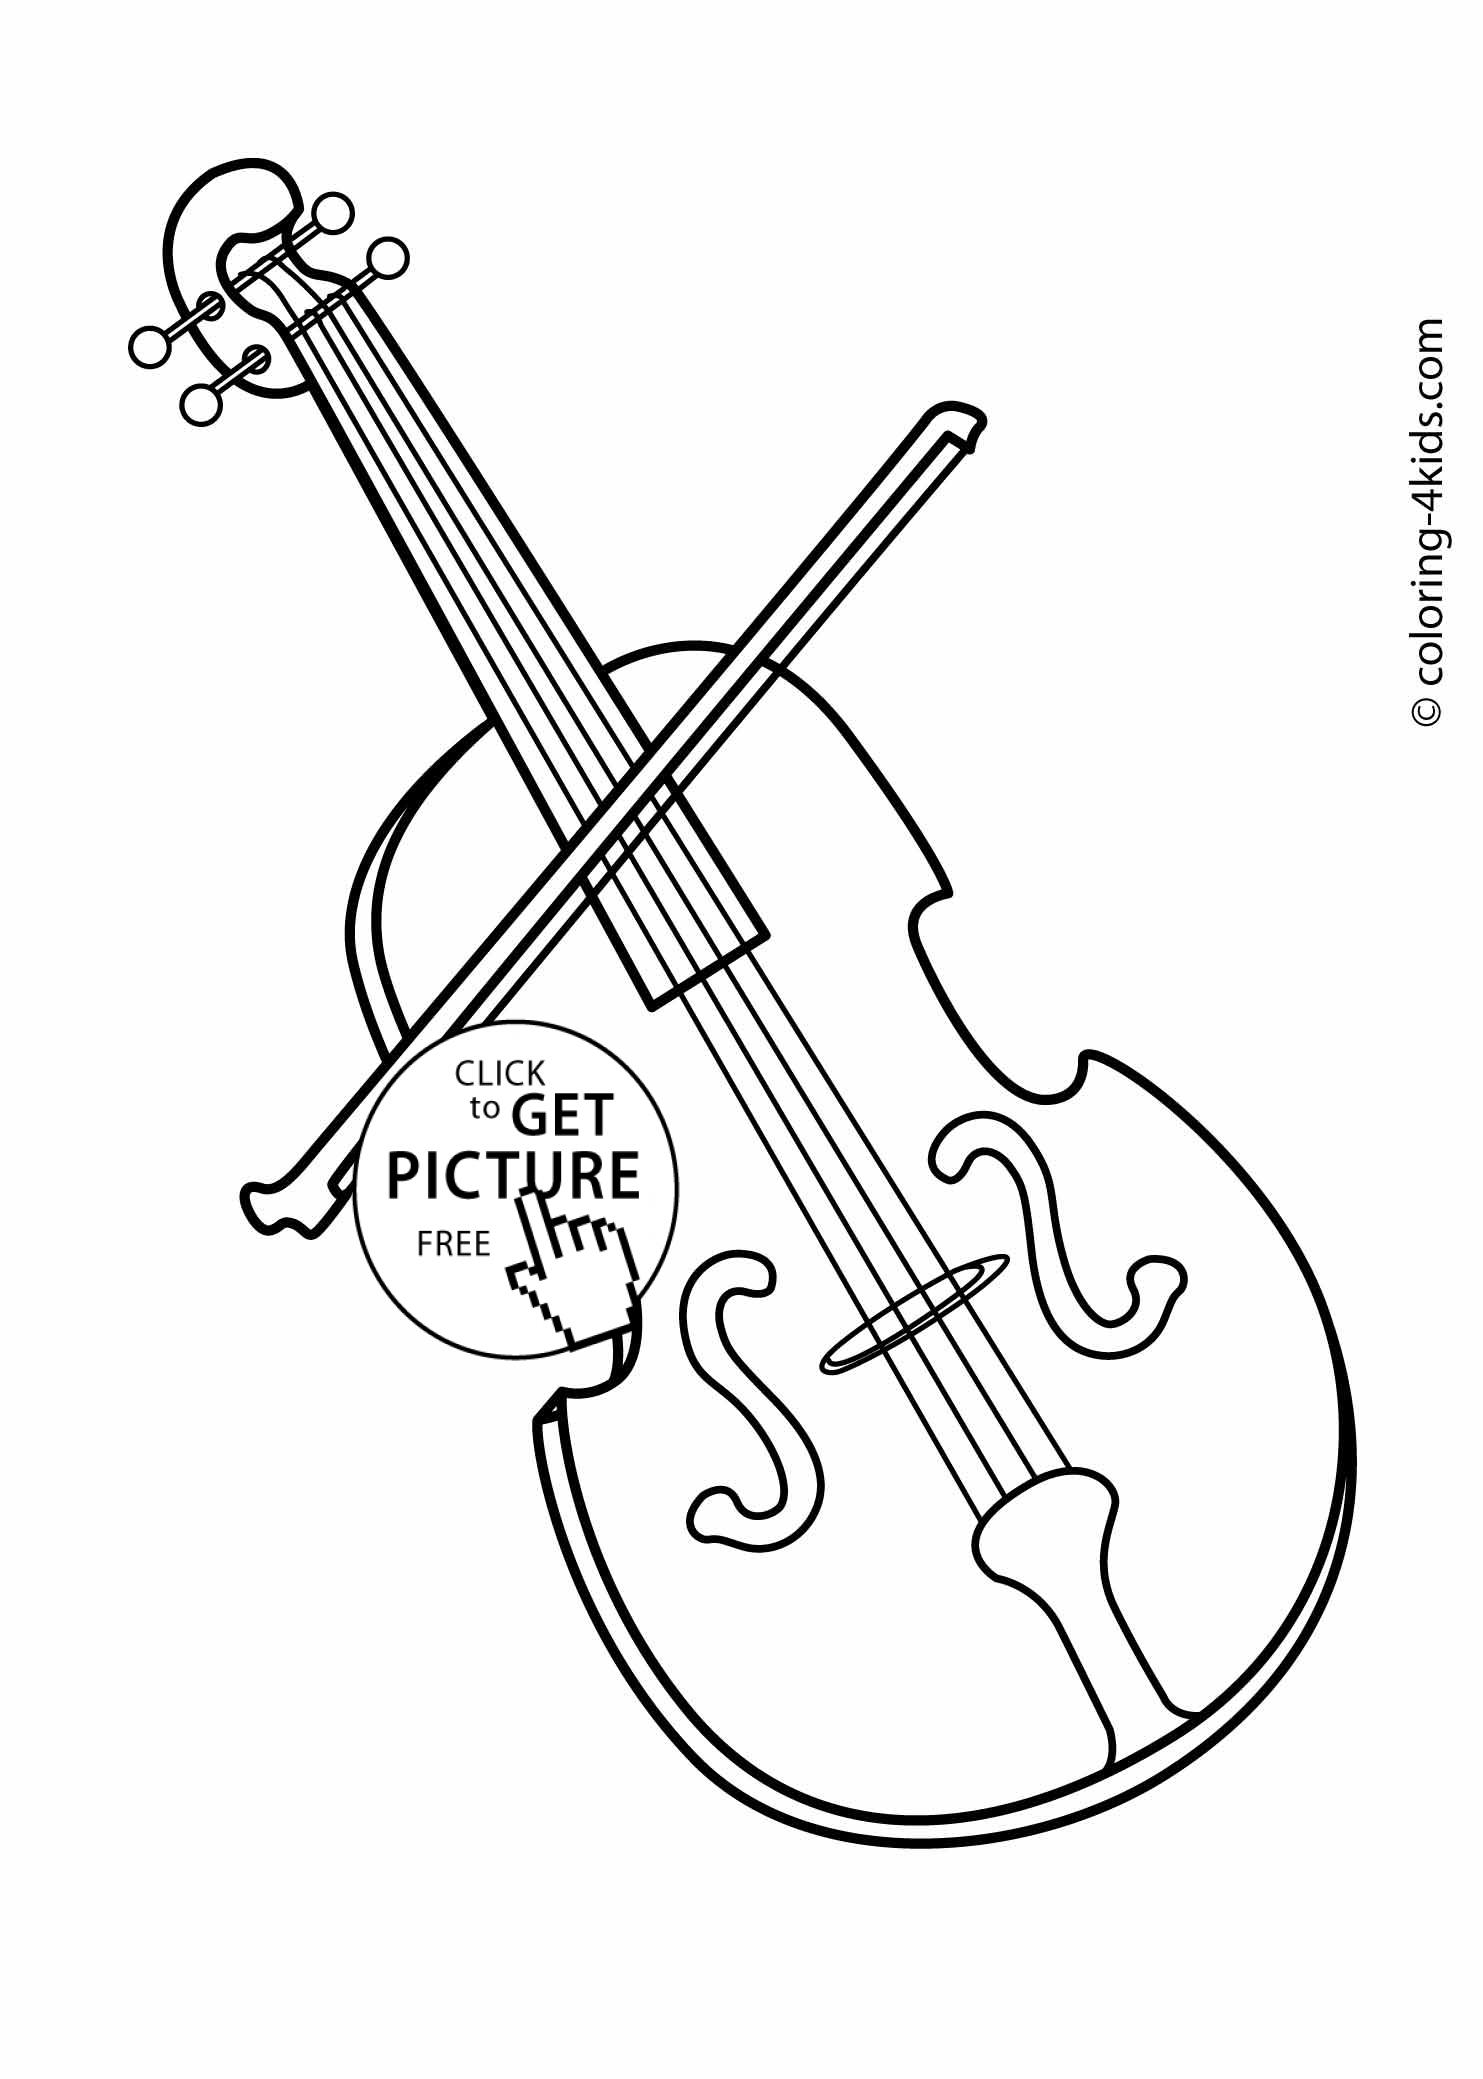 free music instrument coloring pages - photo#18